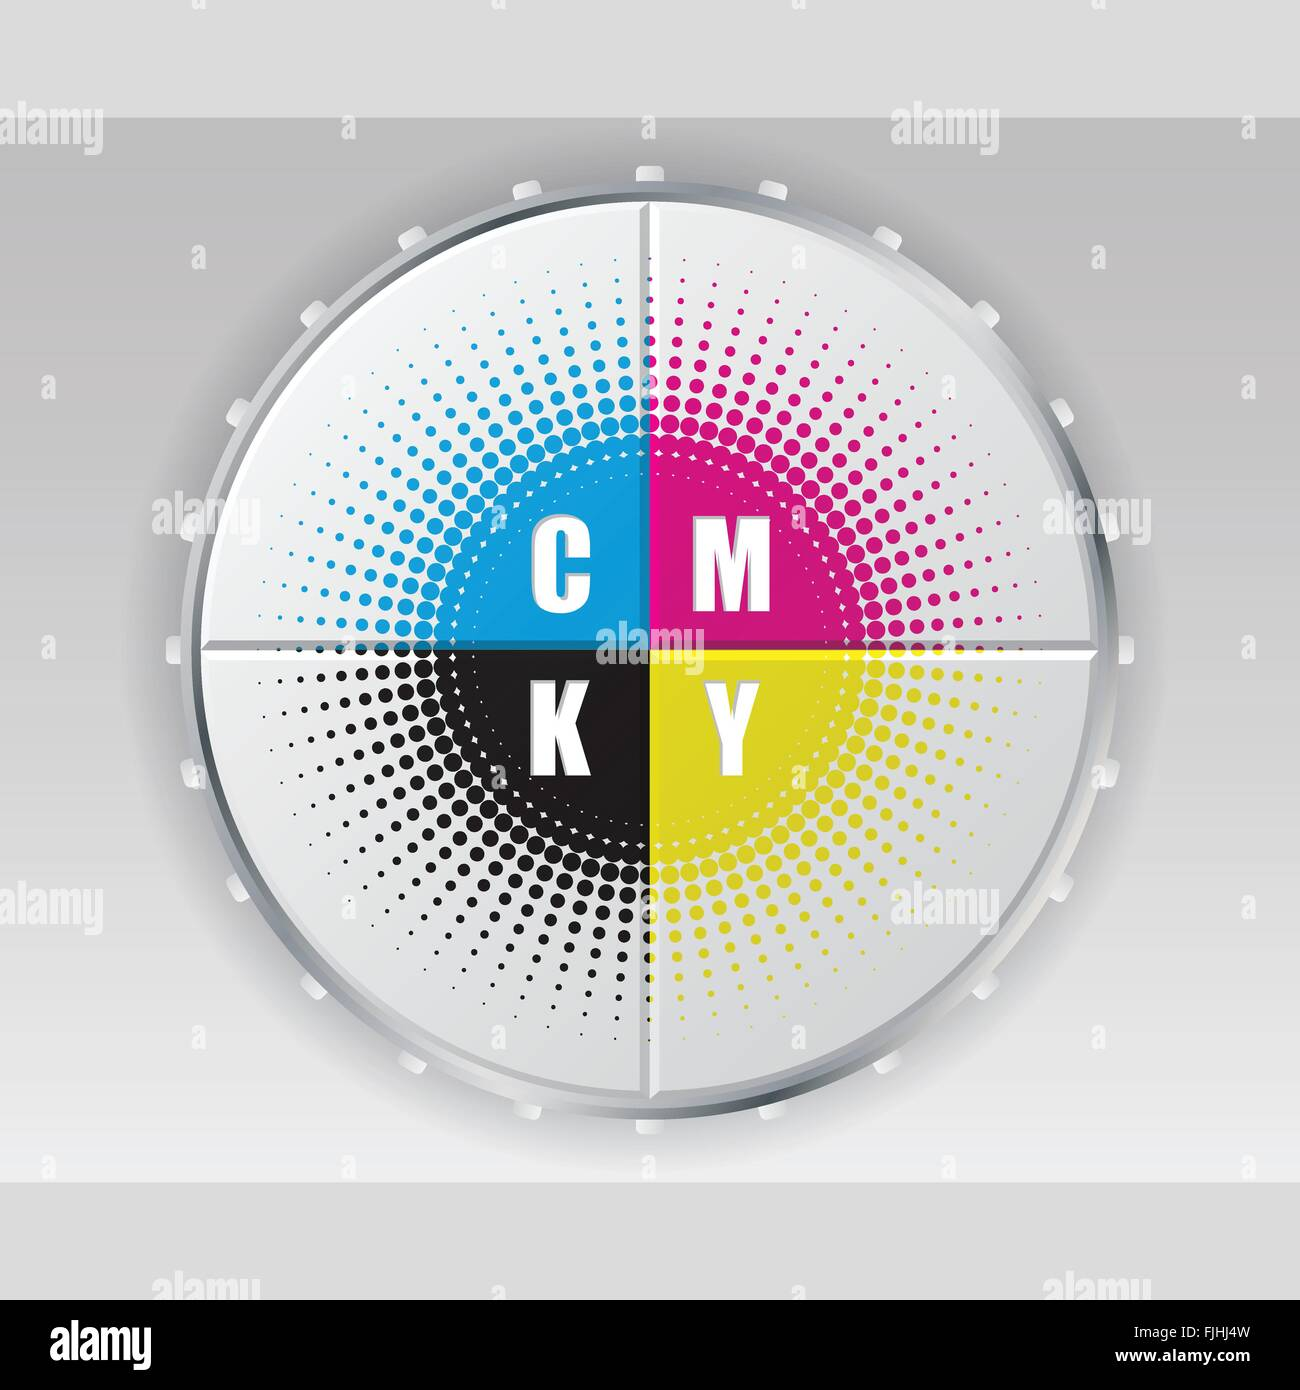 Abstract digital button design with cmyk halftone - Stock Image